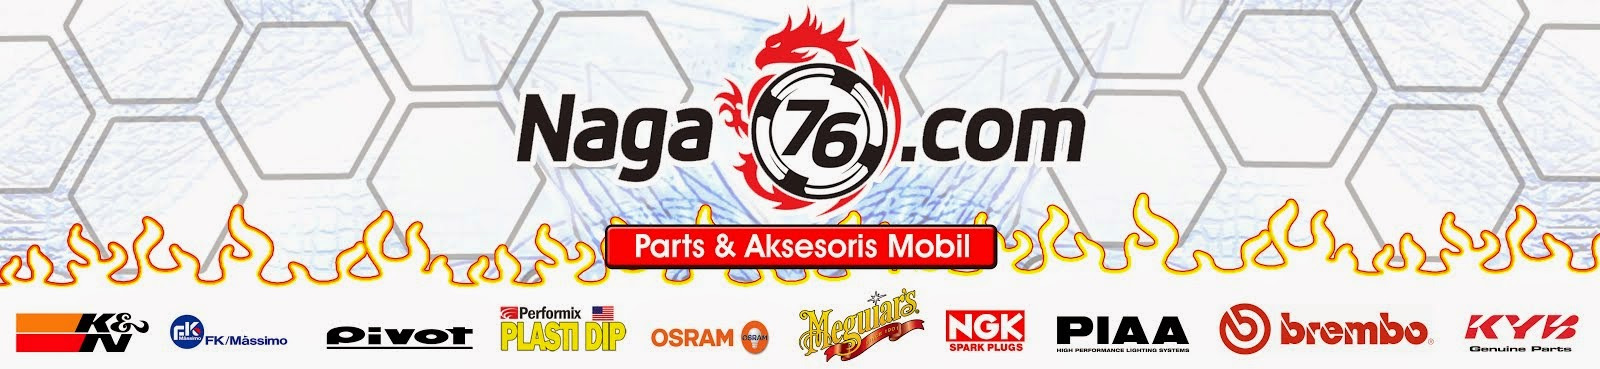 Naga 76 - Automotive Parts & Accessories